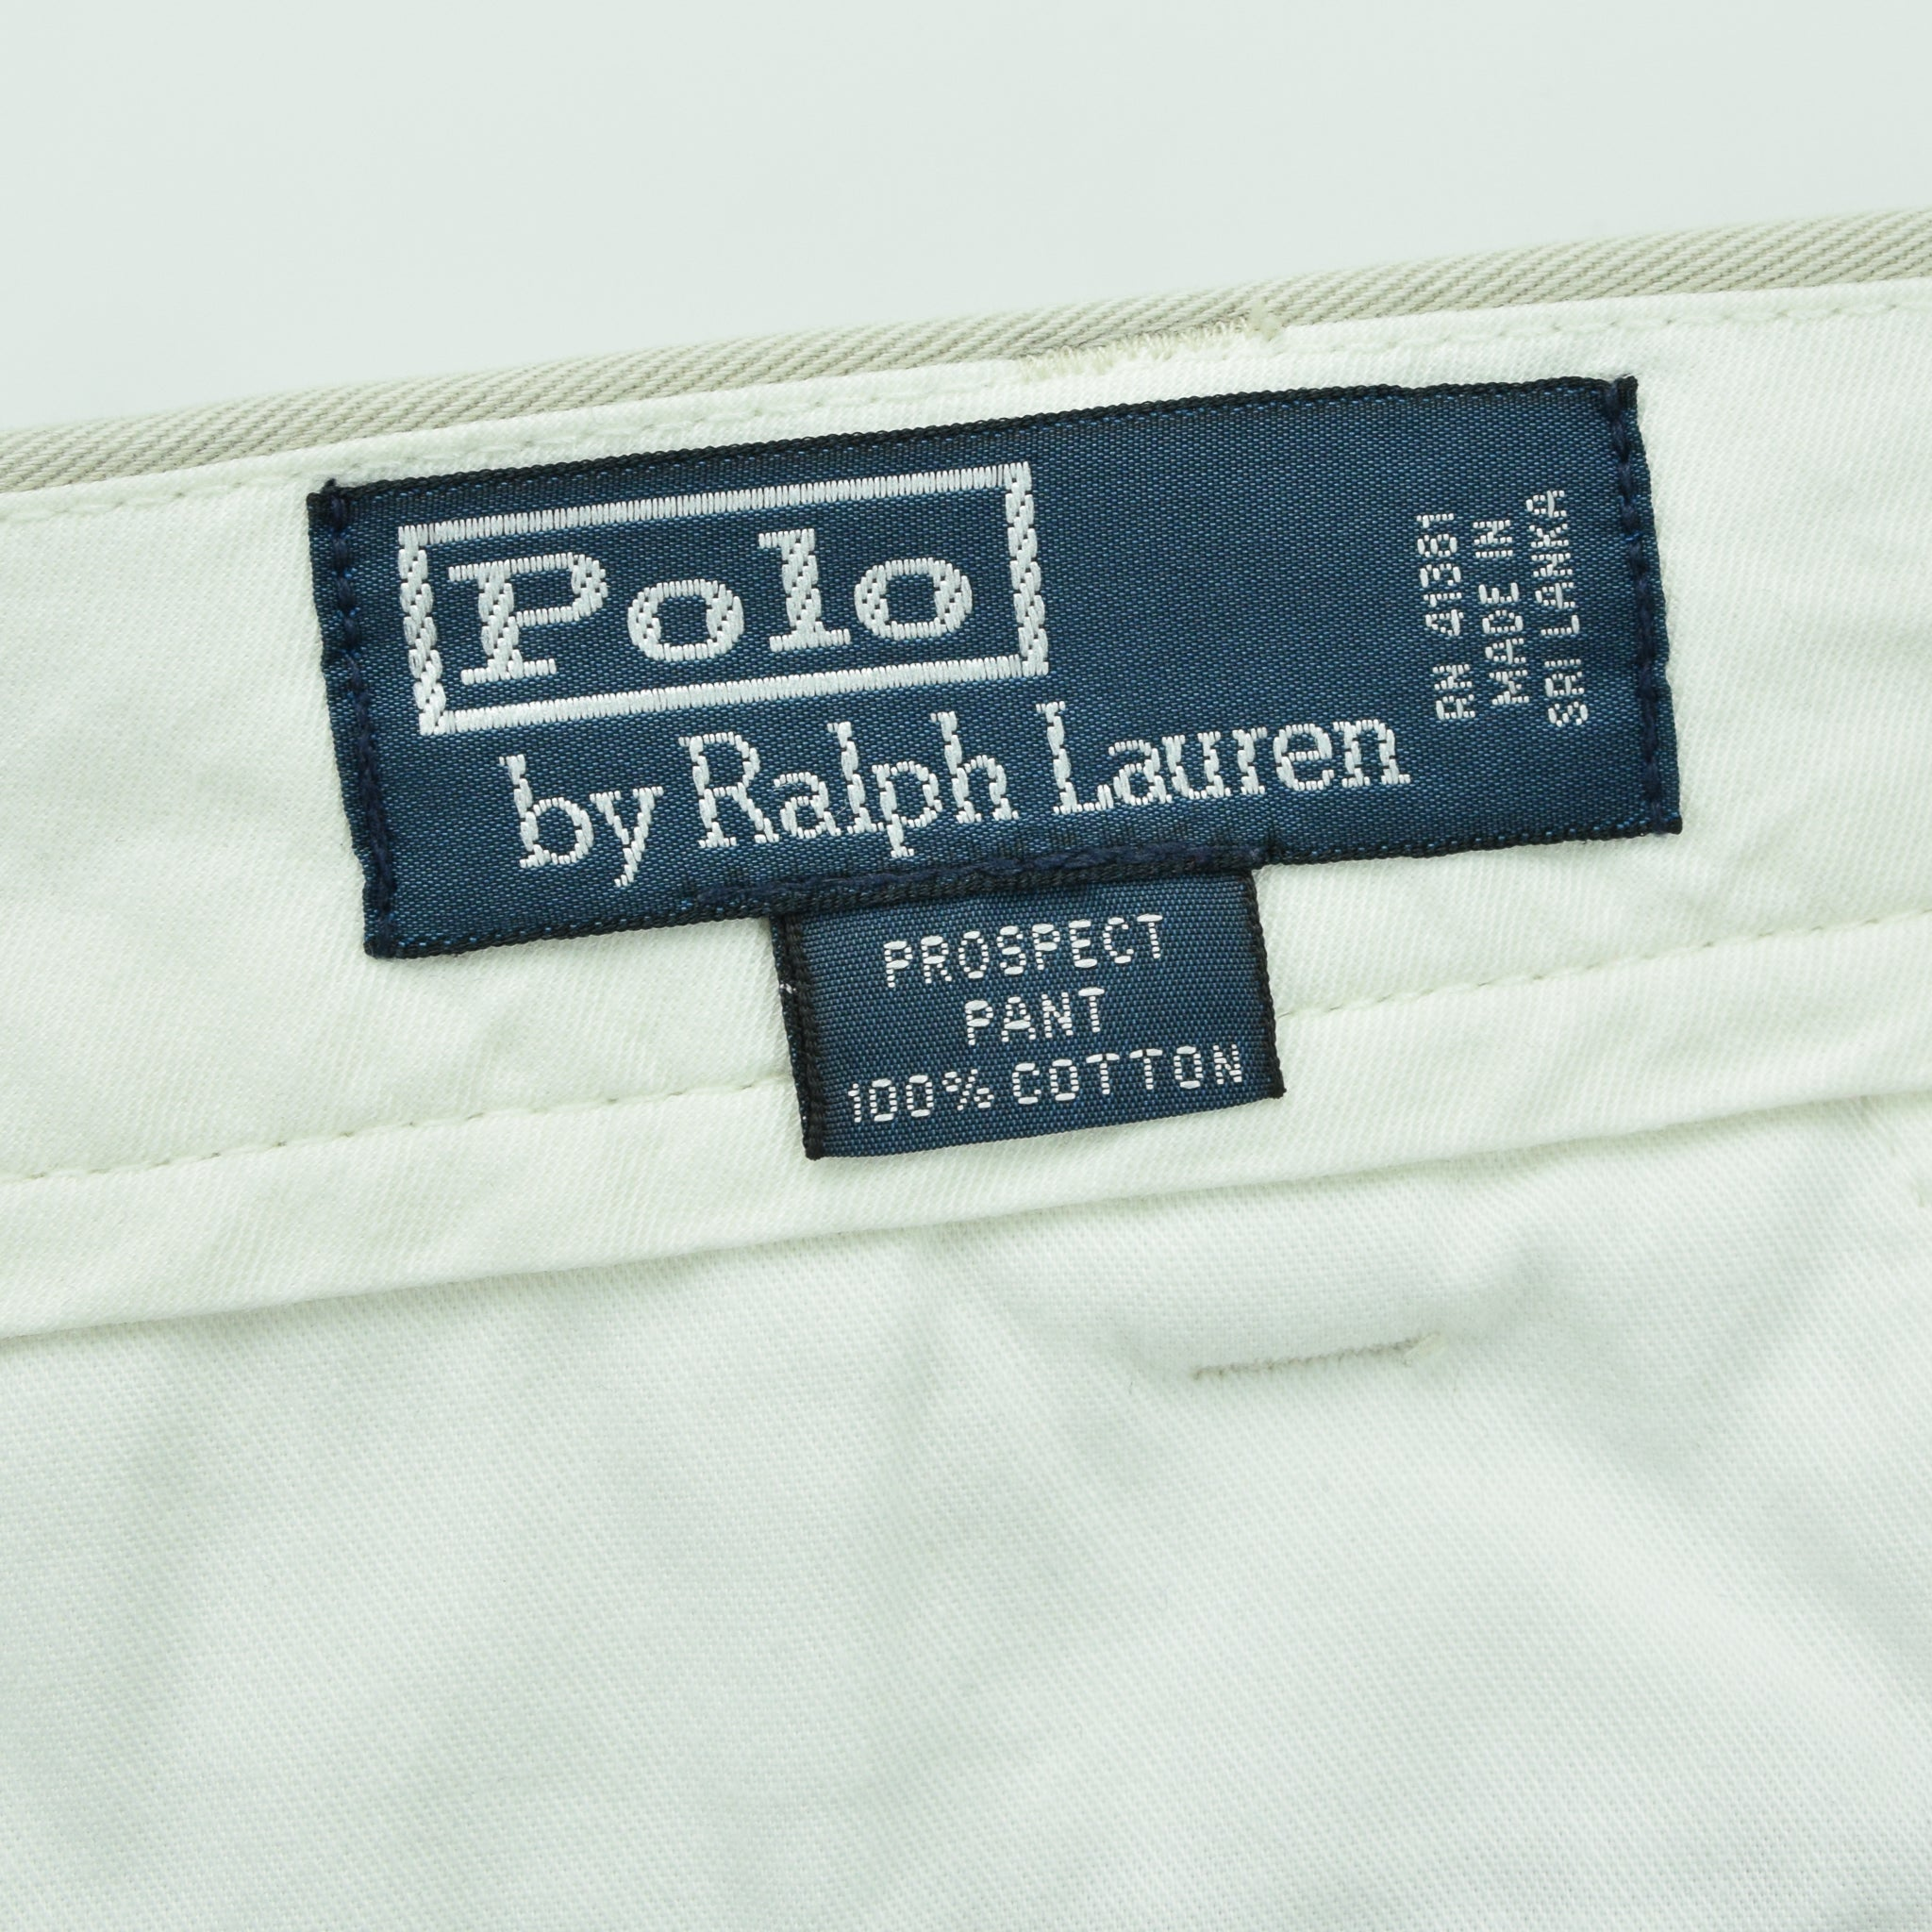 Ralph Lauren Polo Prospect Pant Chinos Stone Flat Front Trousers 32 W 30 L label